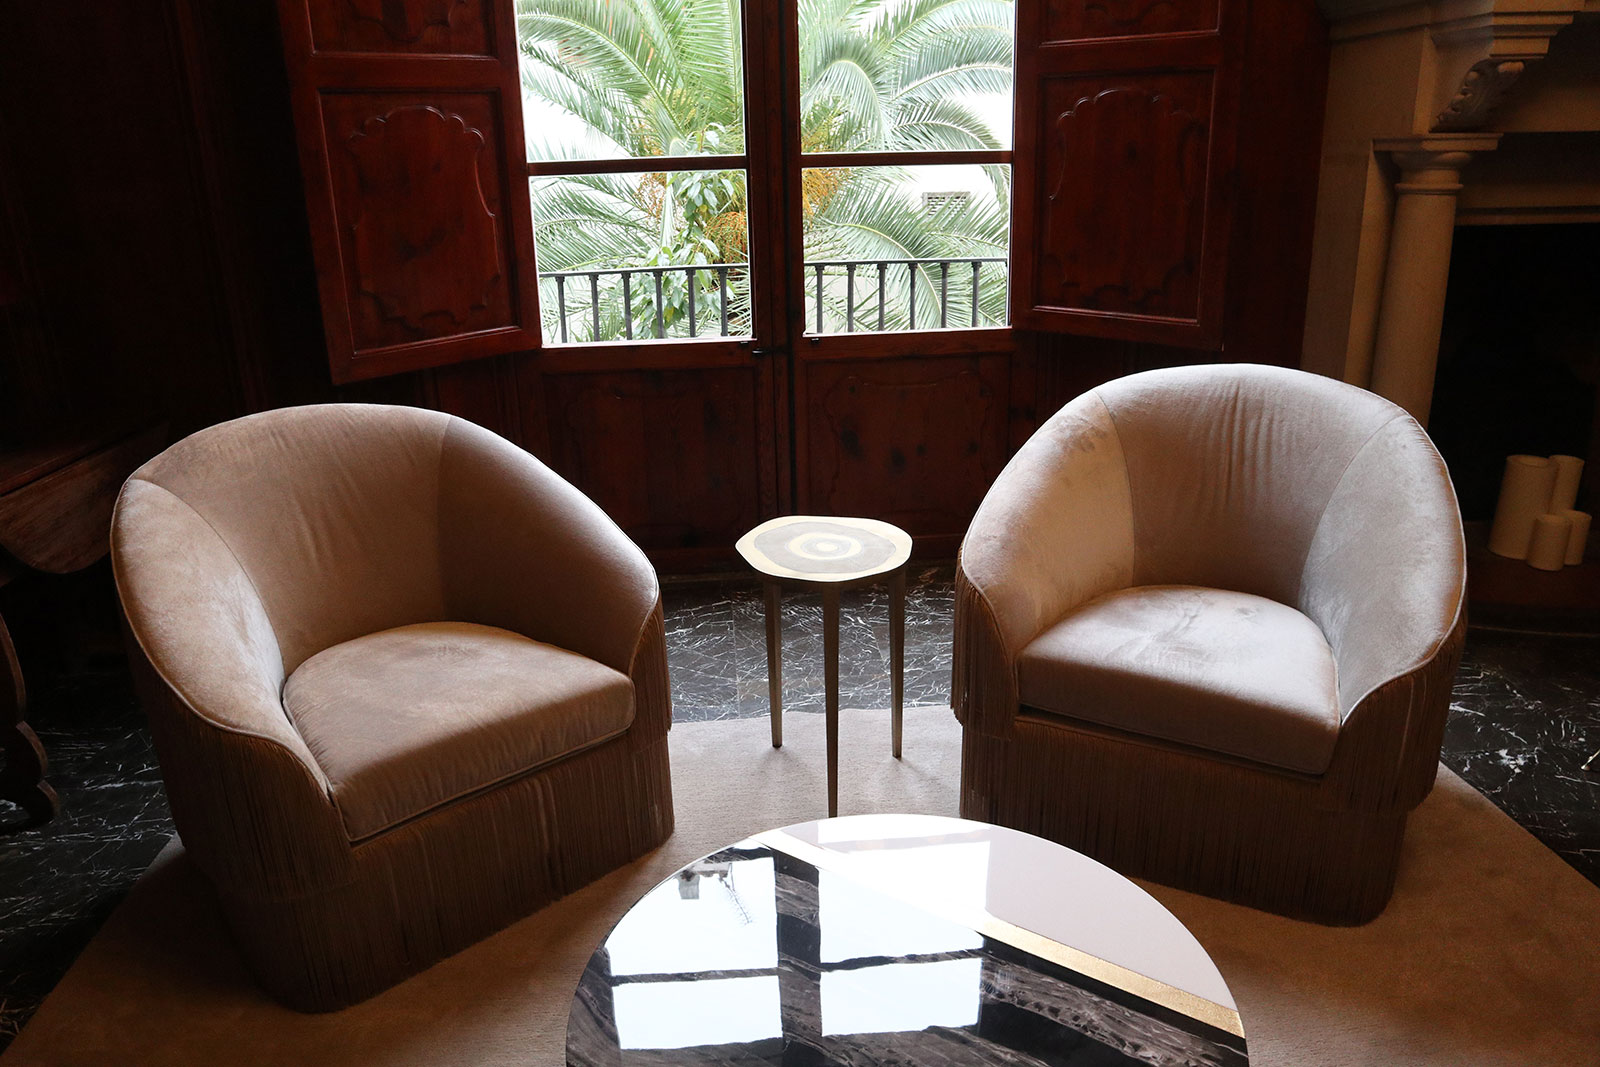 Palacio San Marques outside upstairs suite evokes English club